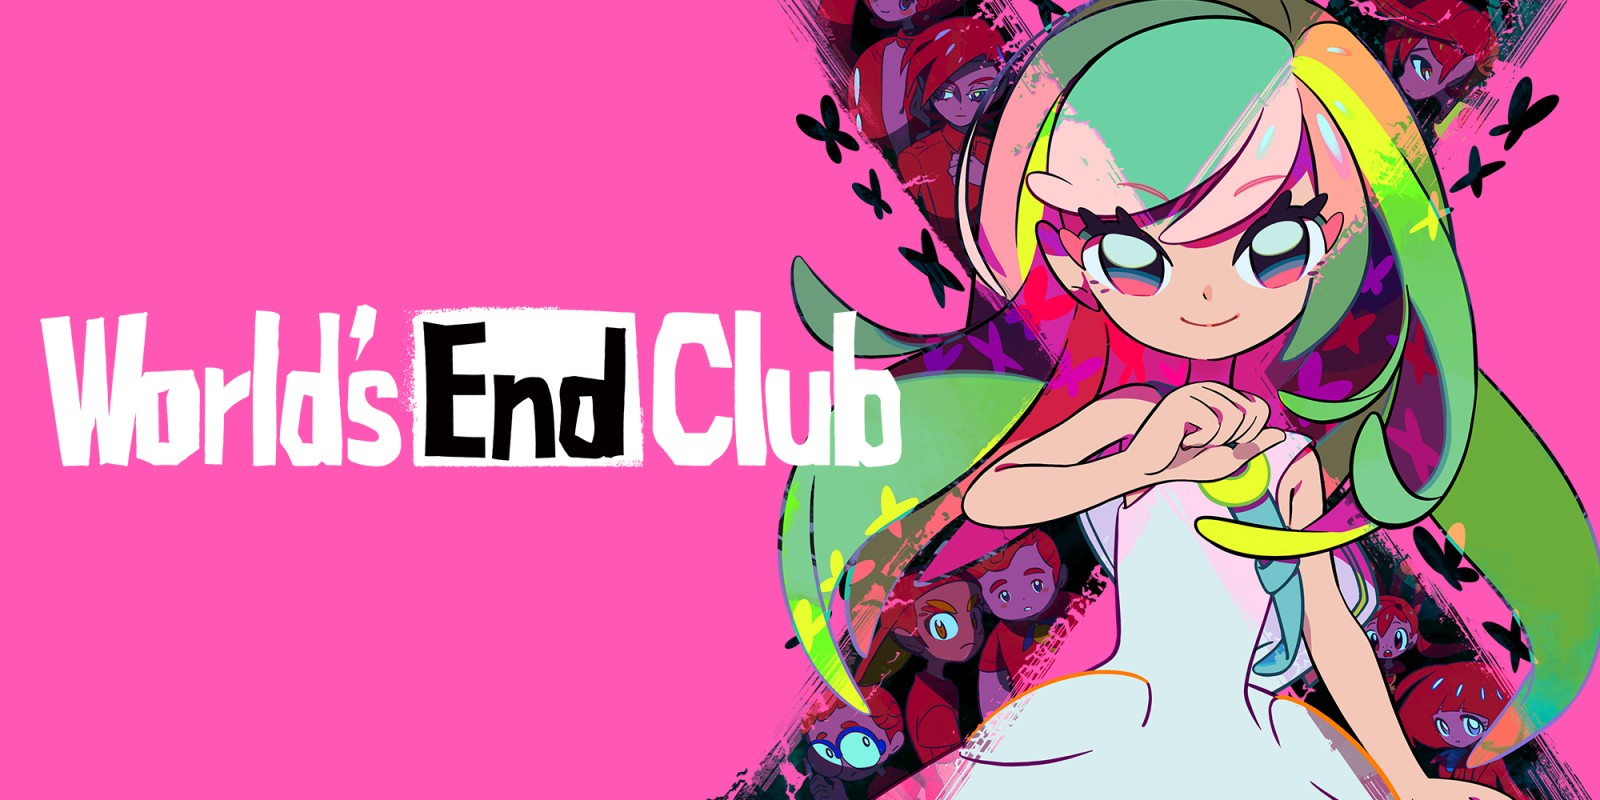 World's End Club